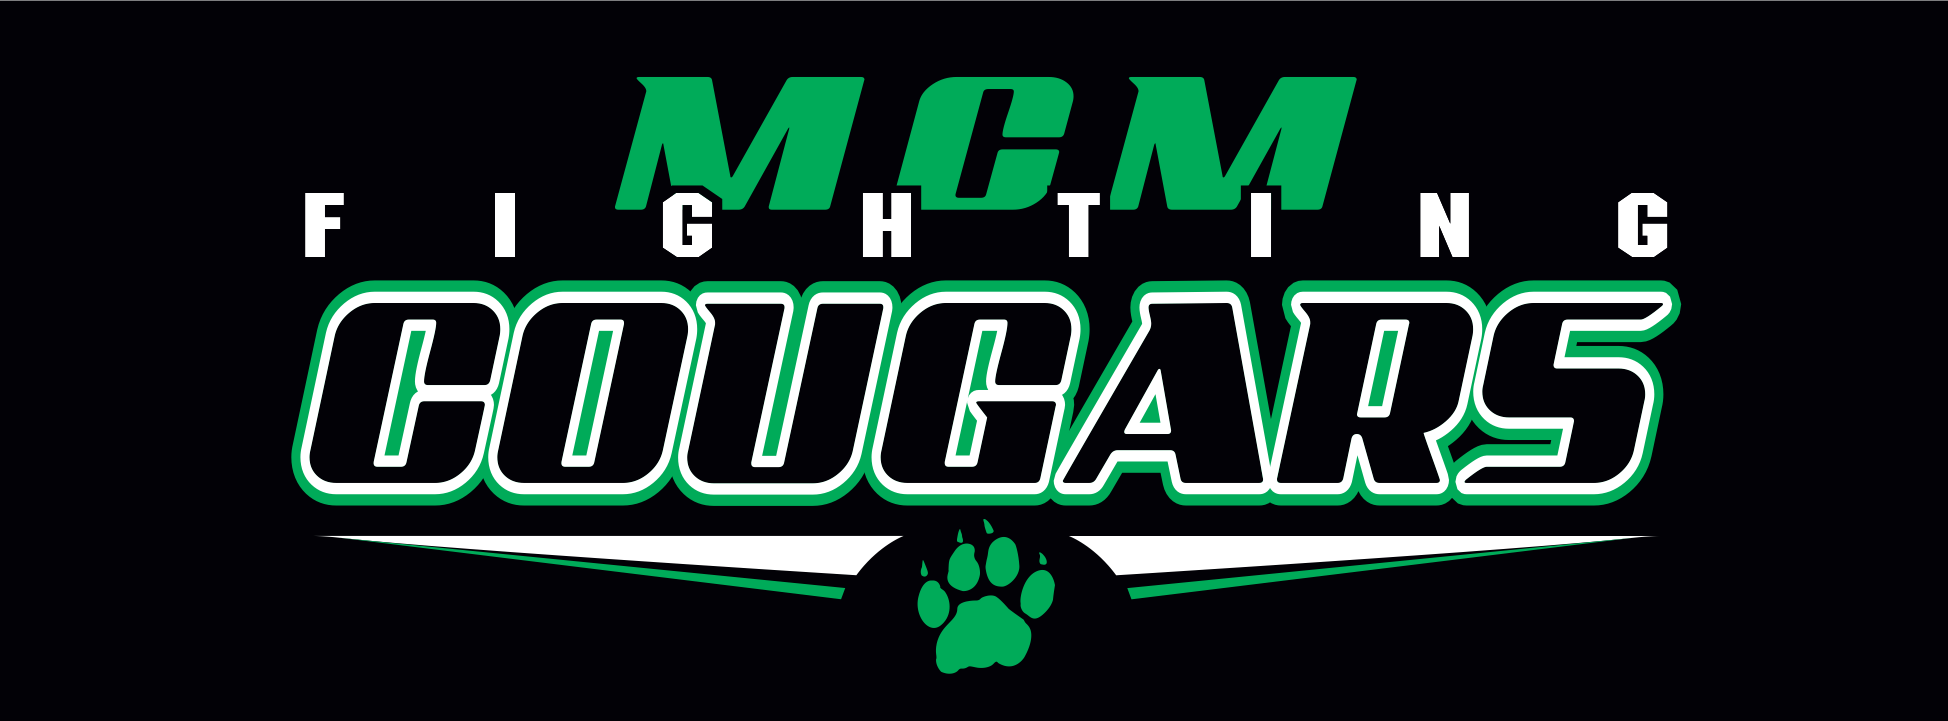 MCM Fighting Cougars